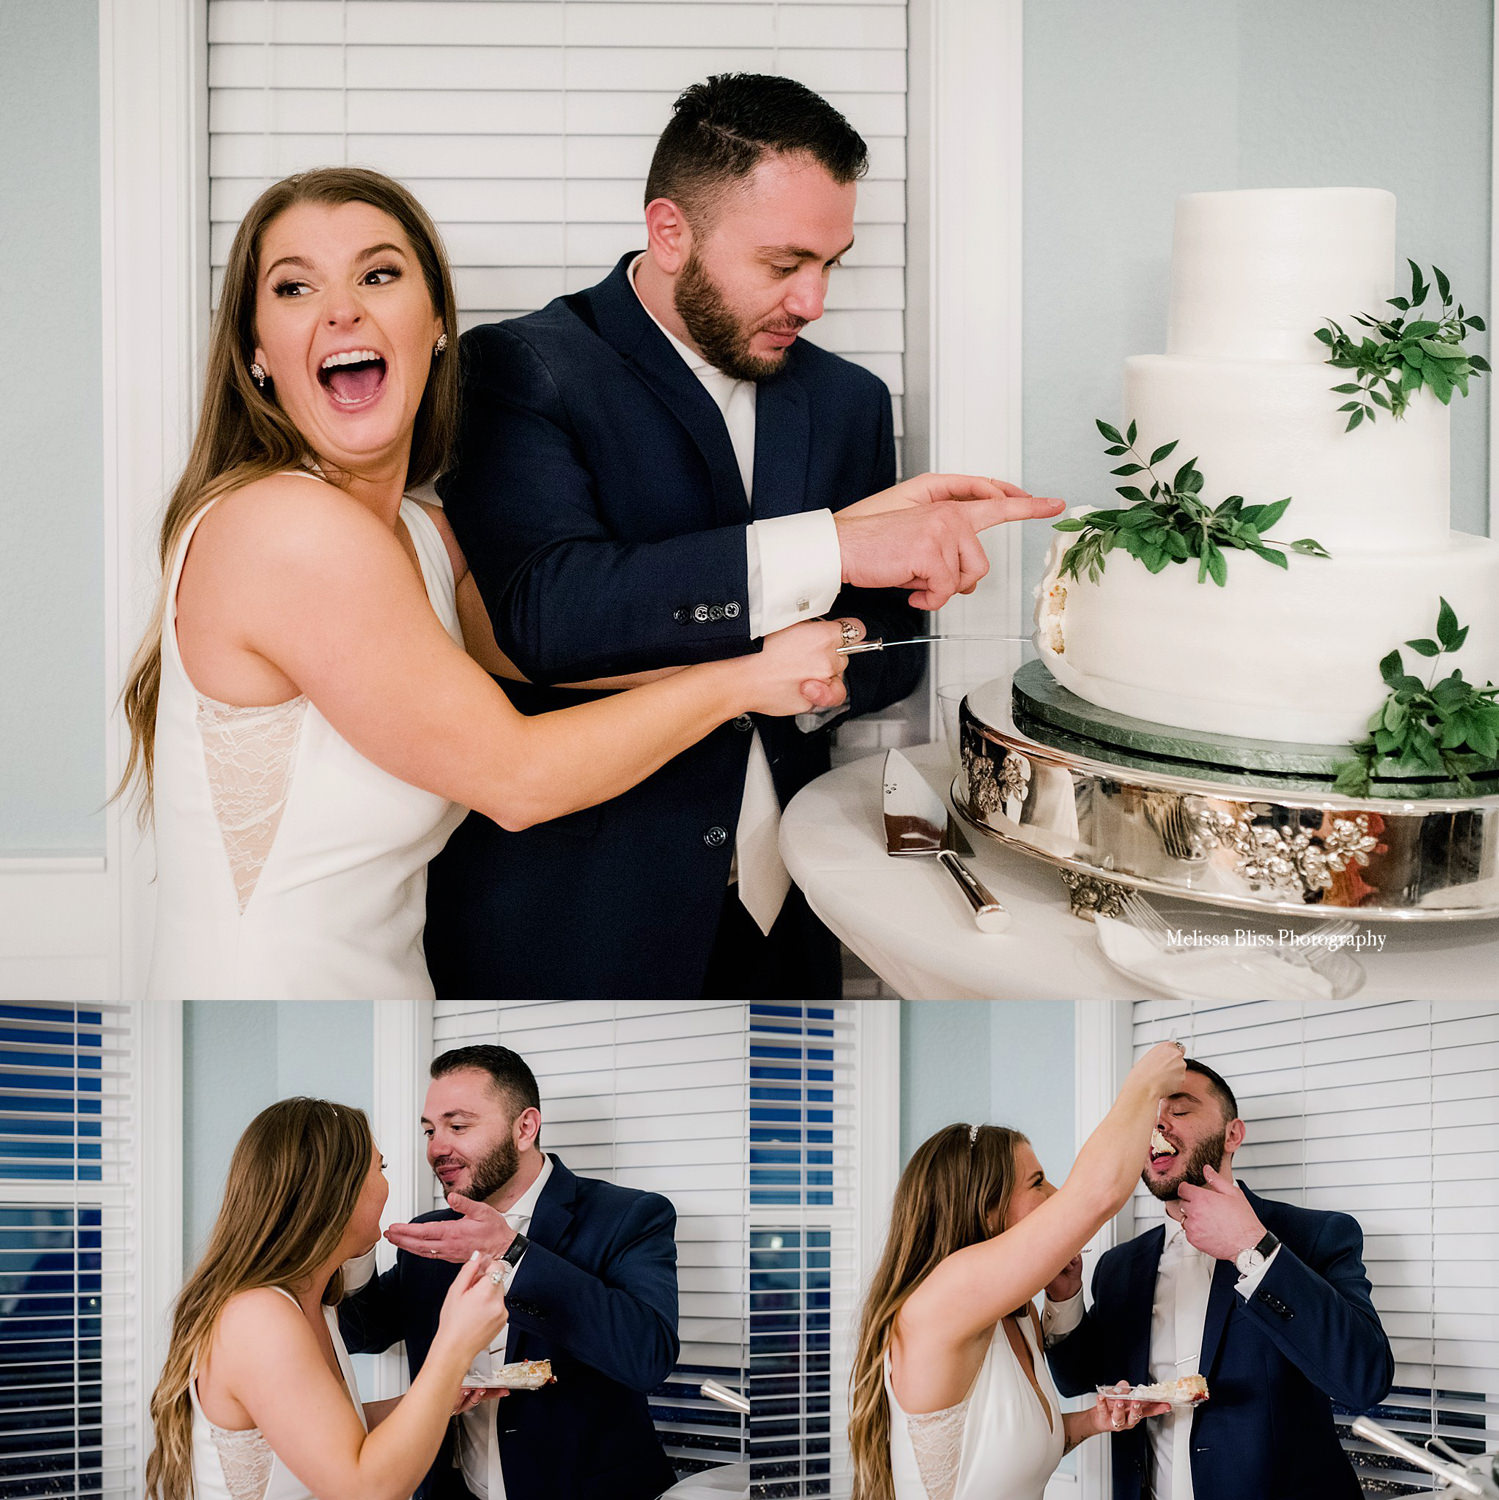 cutting-the-cake-sandbridge-wedding-virginia-beach-melissa-bliss-photography.jpg